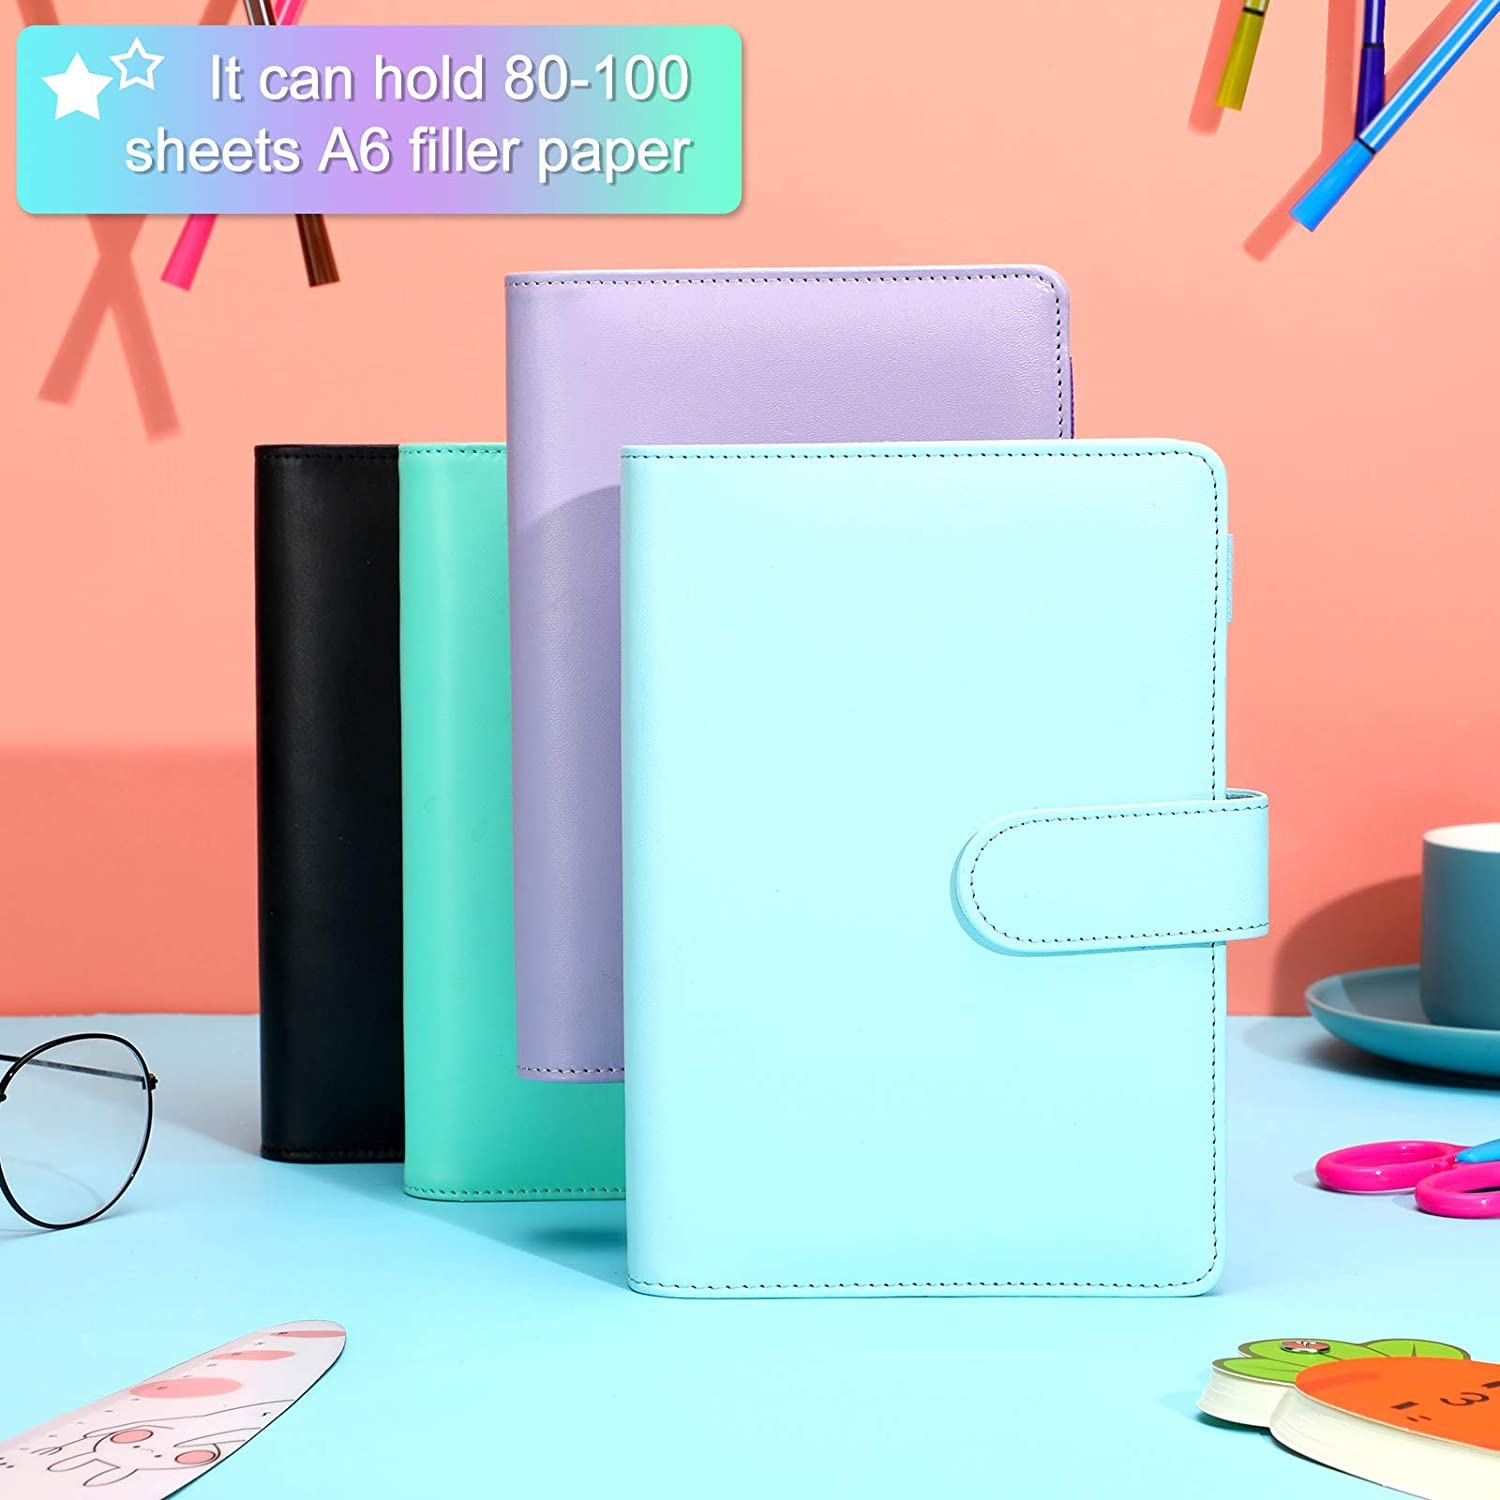 4 Pieces A6 PU Artificial Leather Notebook Binder Loose Leaf Binder Refillable 6 Ring Binder Cover with Magnetic Buckle Closure for A6 Filler Paper Blue, Purple, Black, Green